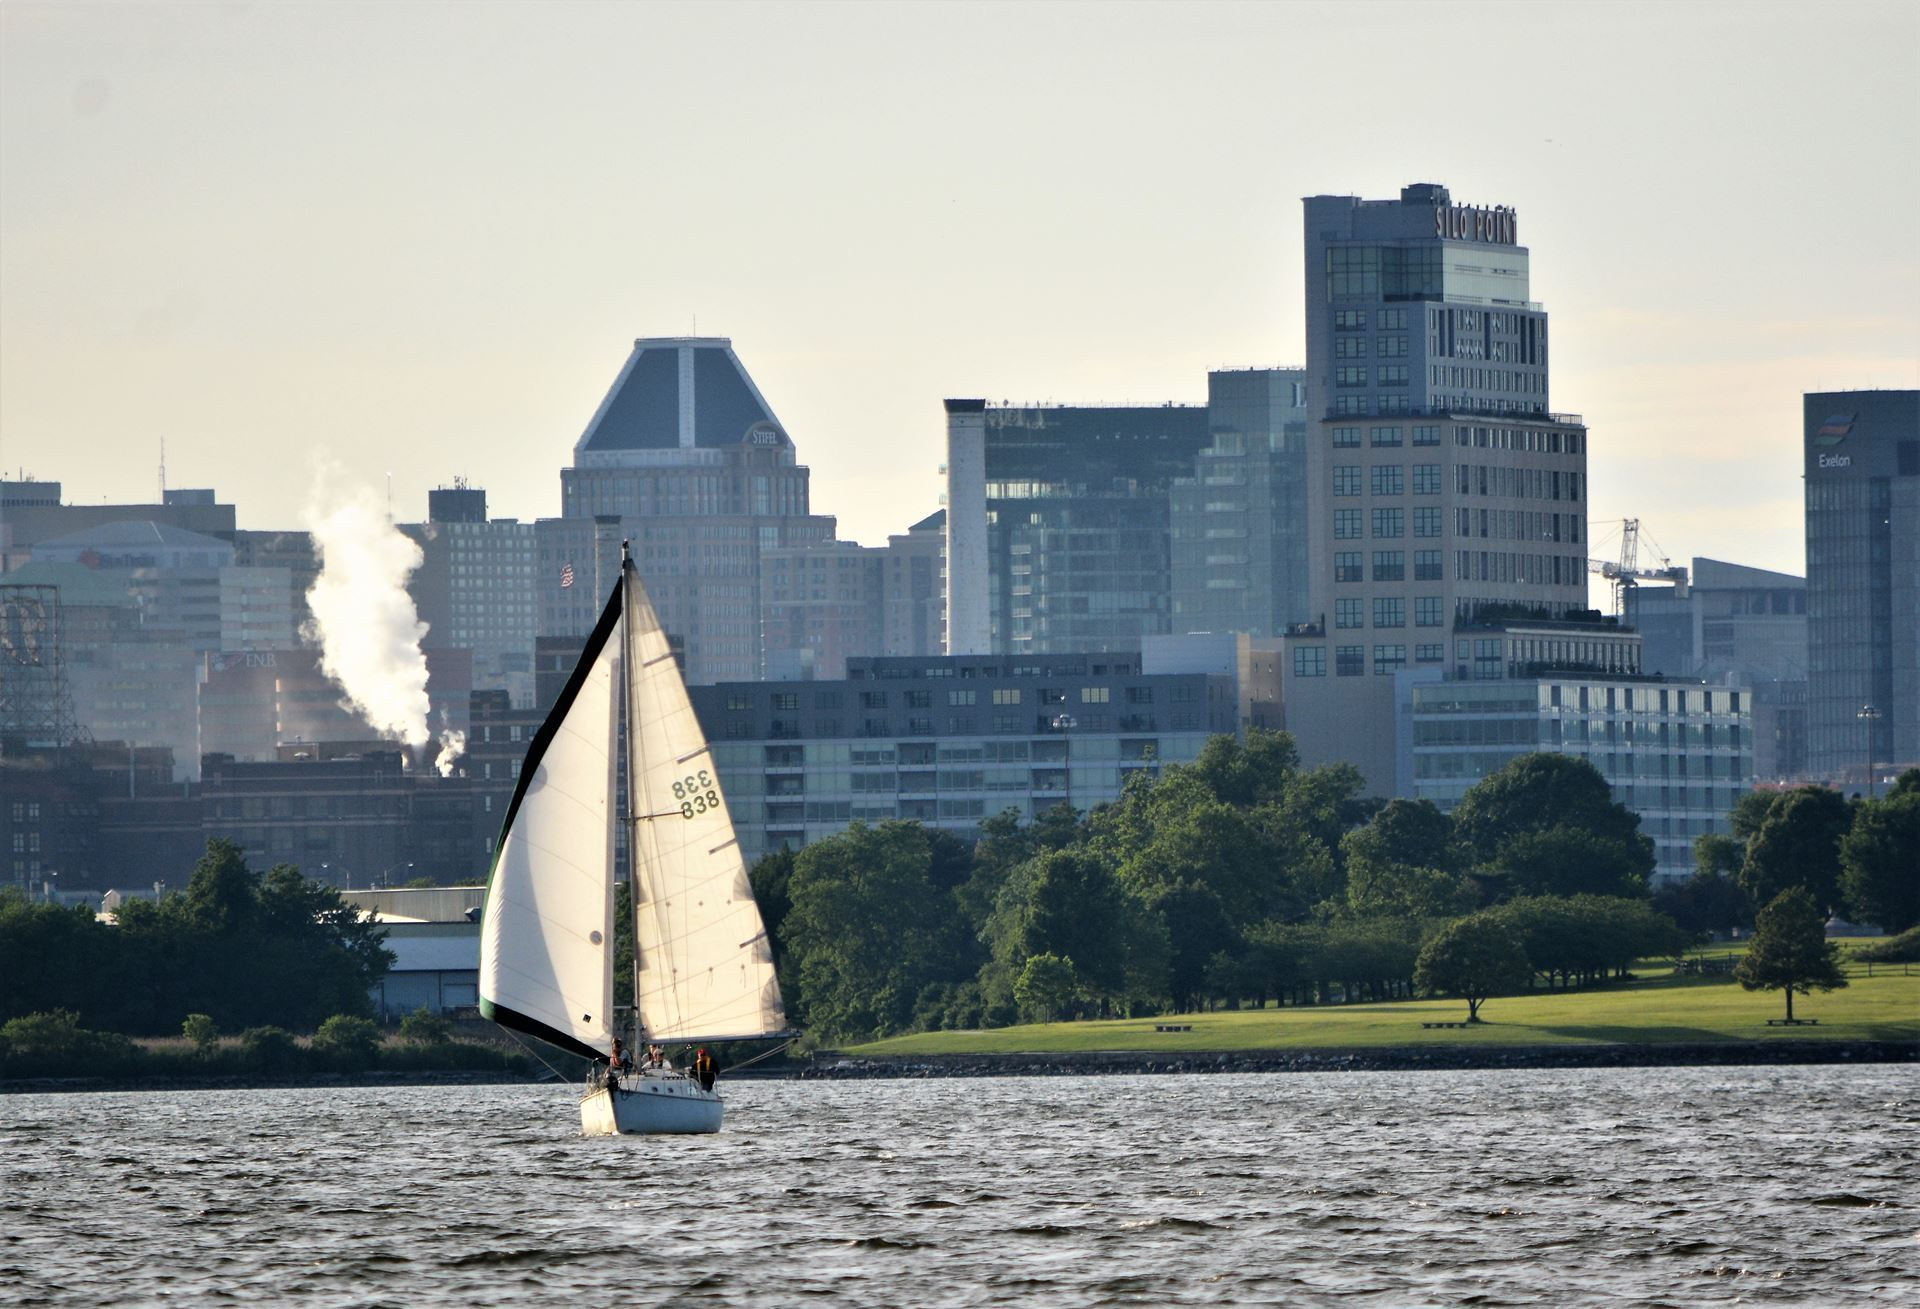 SPRITE sails past Fort McHenry for BCYA racing at Sunset with skyscrapers in background